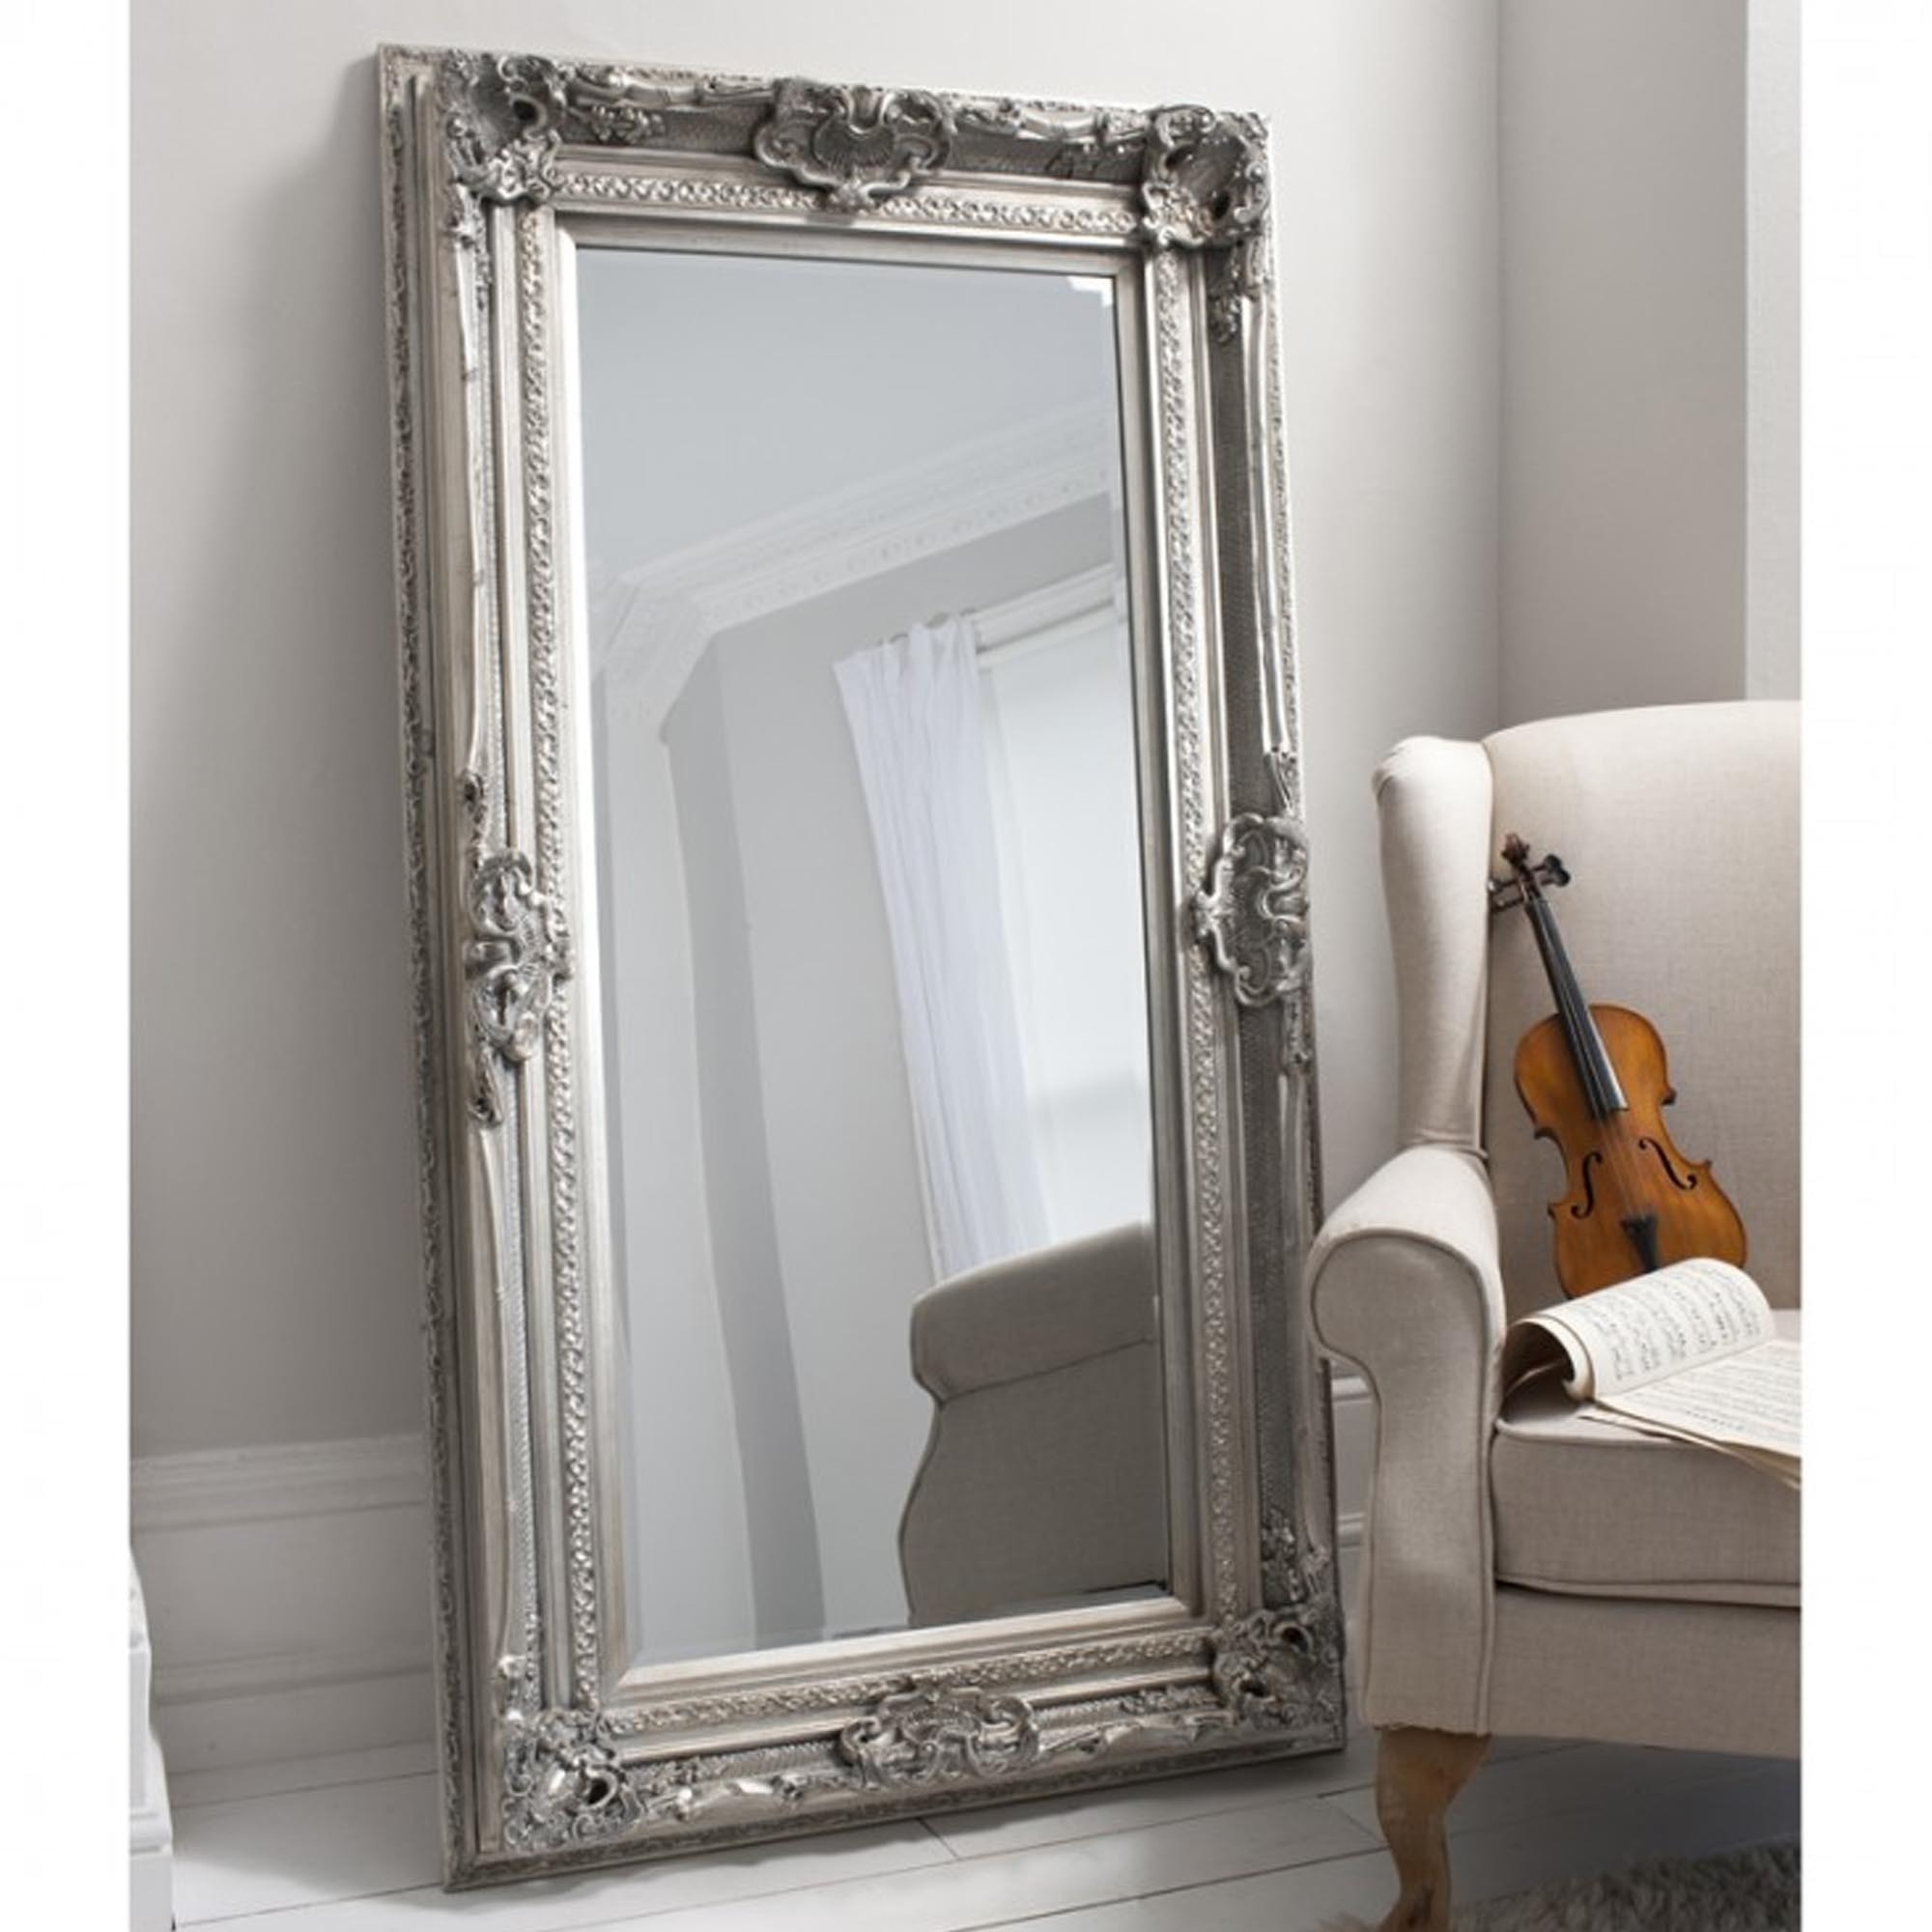 Abbey Rectangle Gold Mirror 110 x 79 cm | Exclusive Mirrors